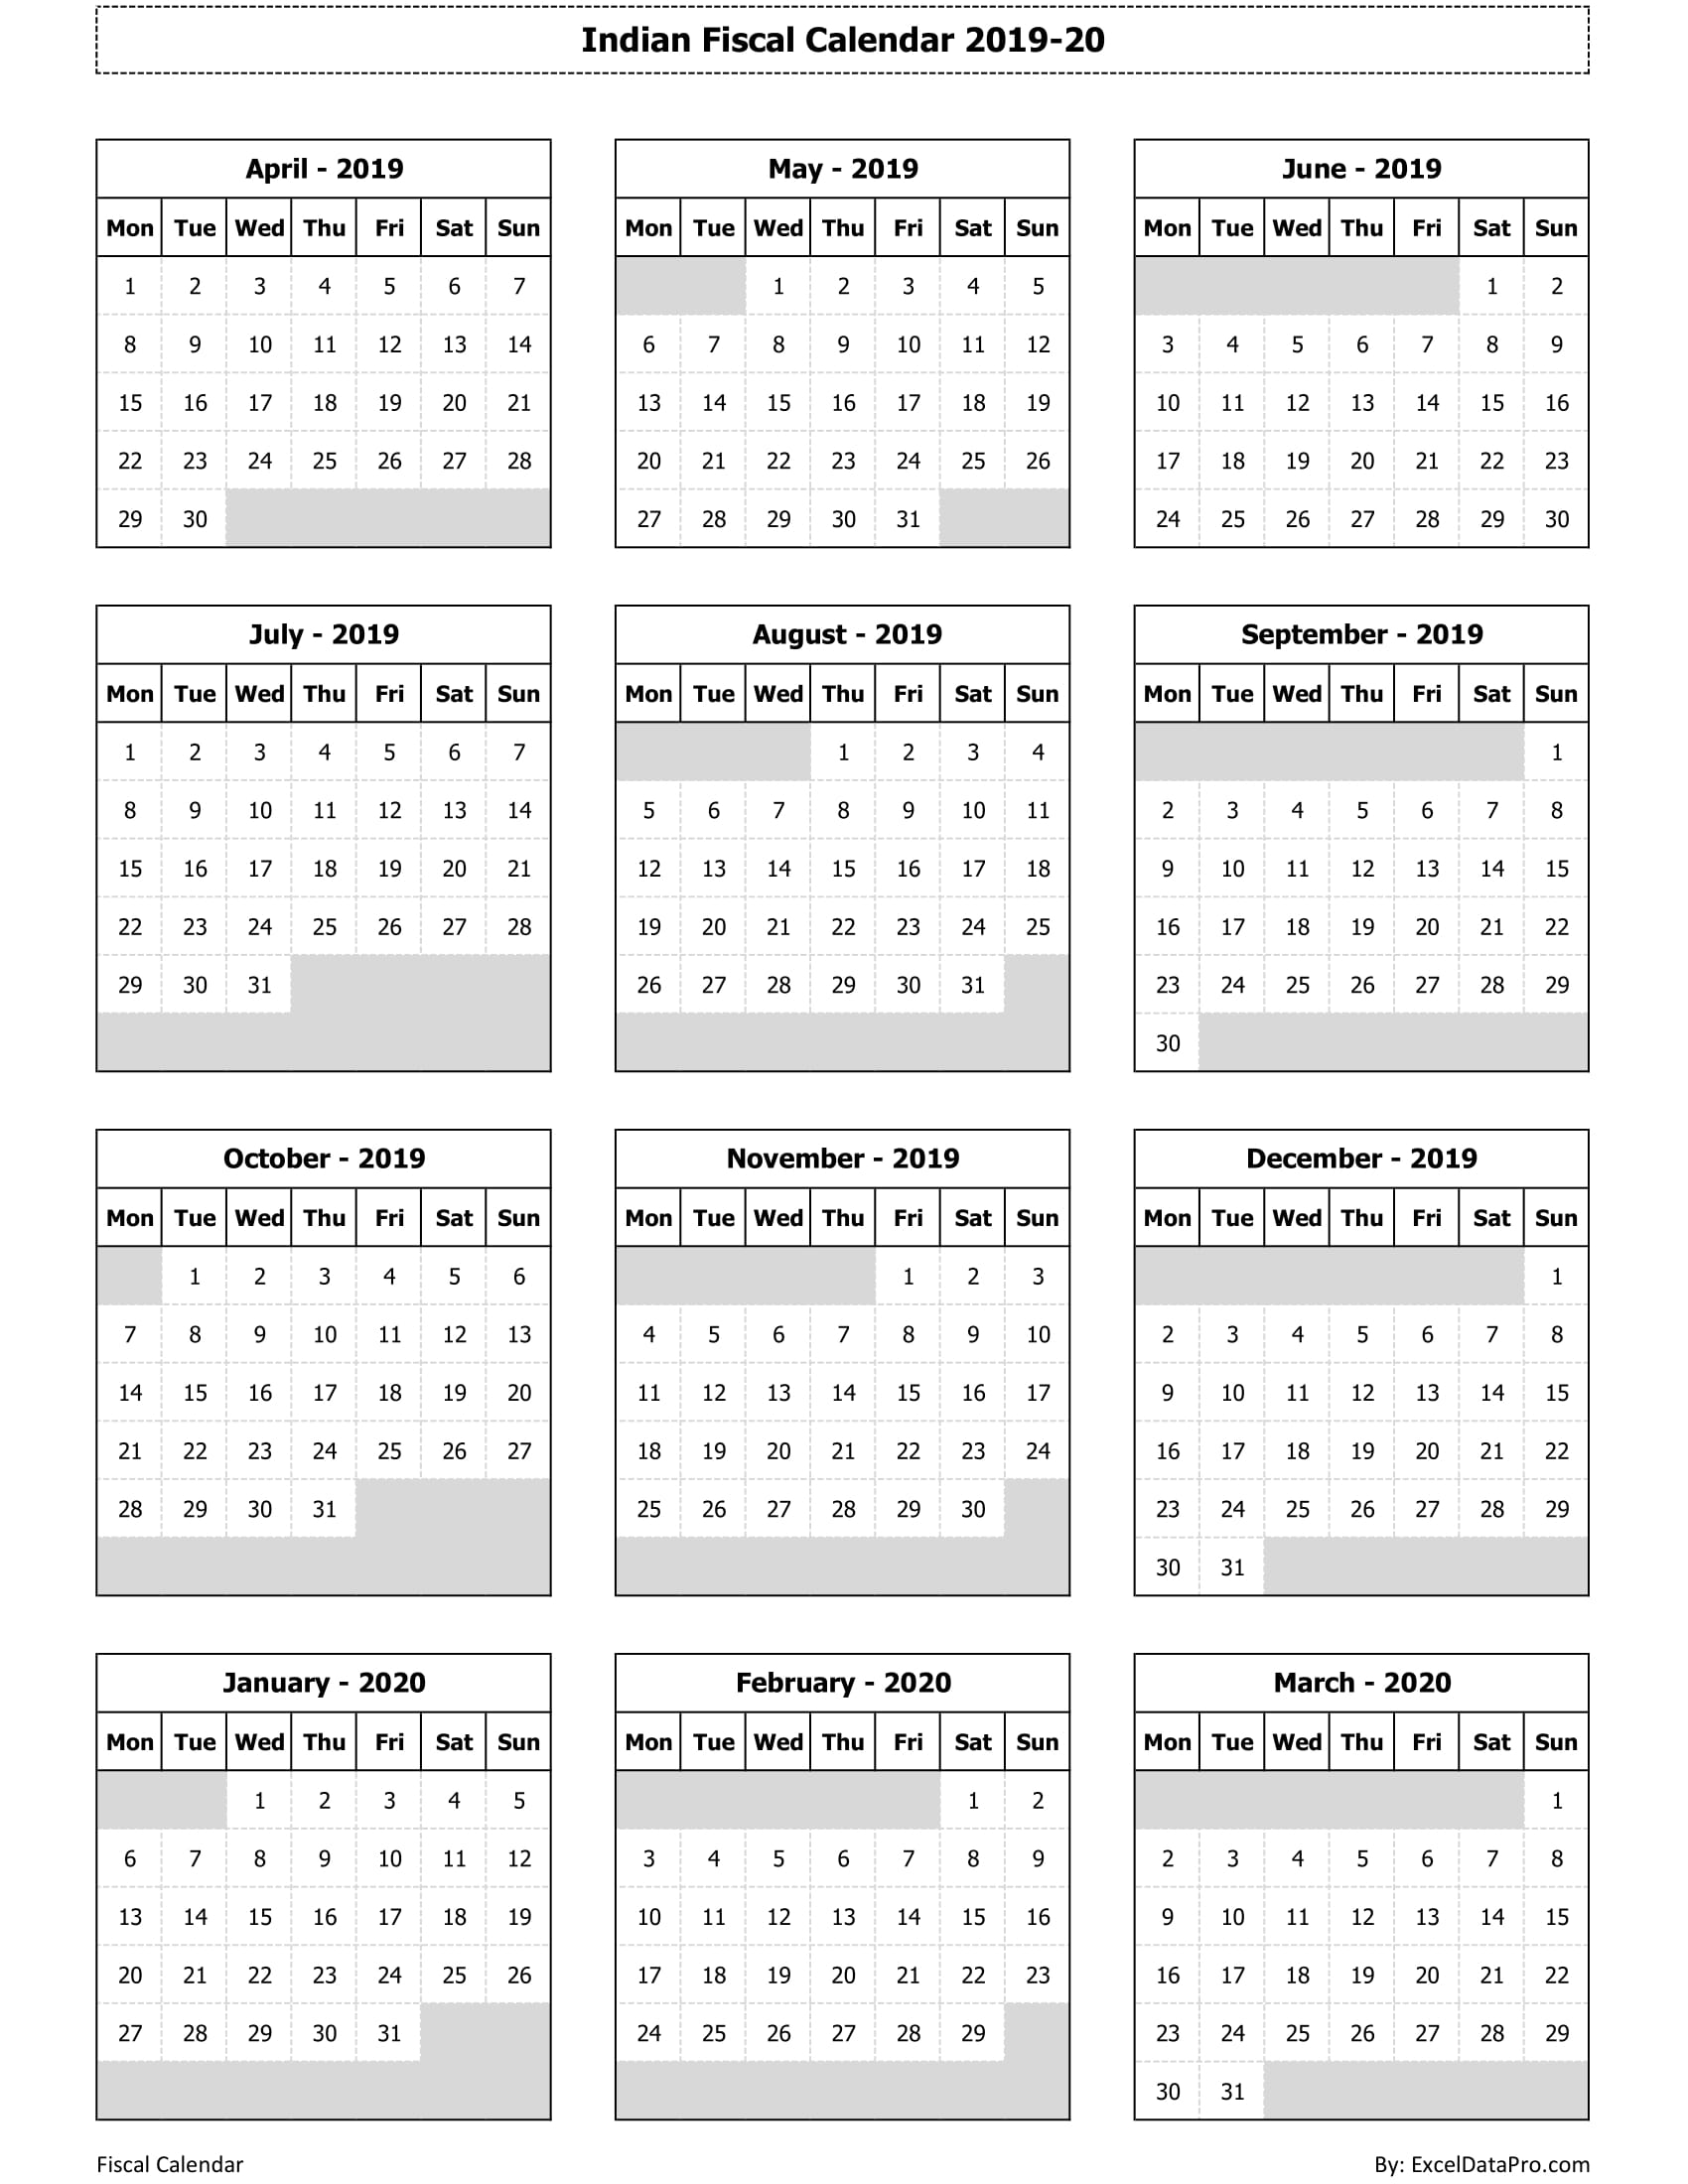 Fiscal Calendar 2019 Download Indian Fiscal Calendar 2019 20 Excel Template   ExcelDataPro